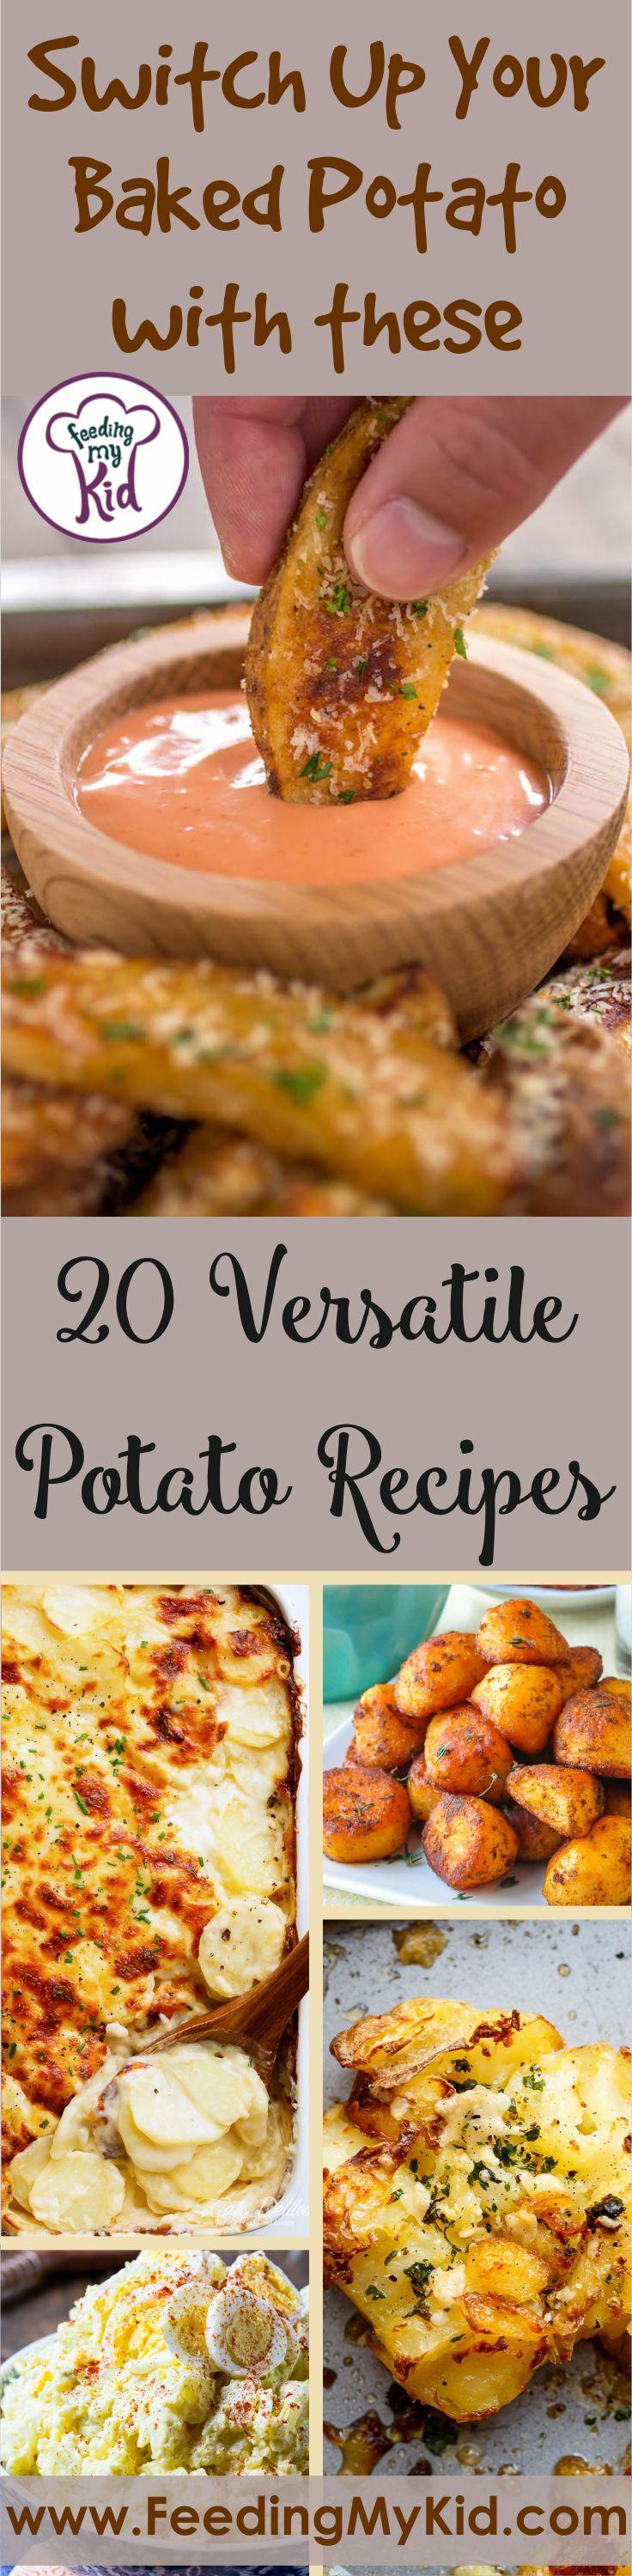 Tired of that boring baked potato? These potato recipes are so versatile that you'll never get bored! They pair perfectly with a variety of dishes.